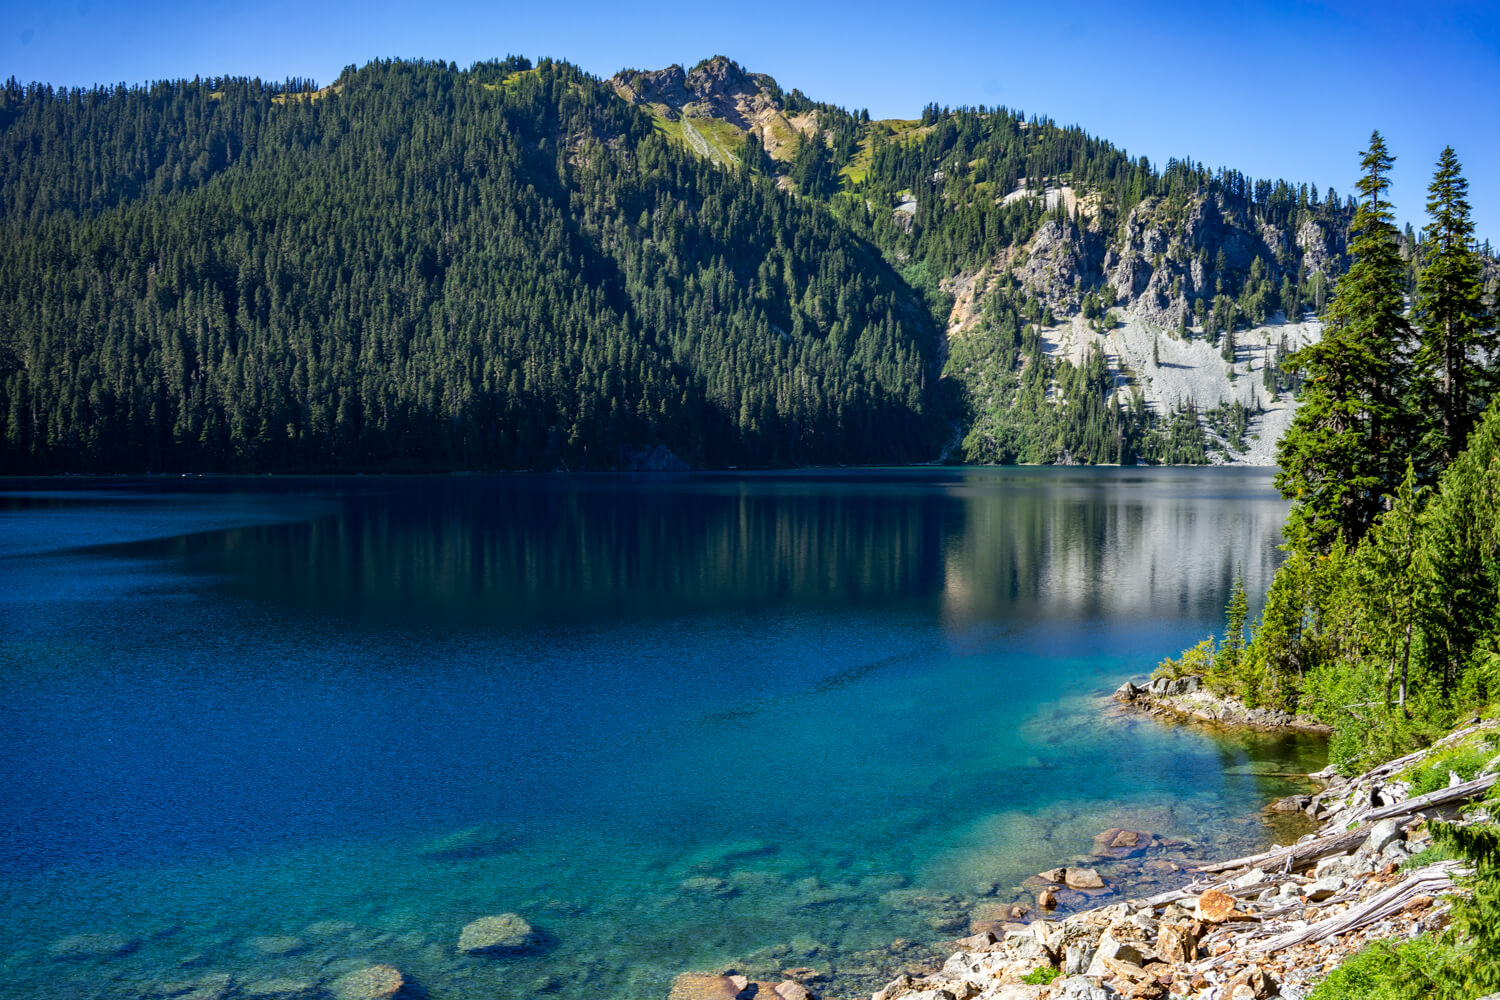 Although it is overshadowed by Jade, Marmot Lake is beautiful in its own right